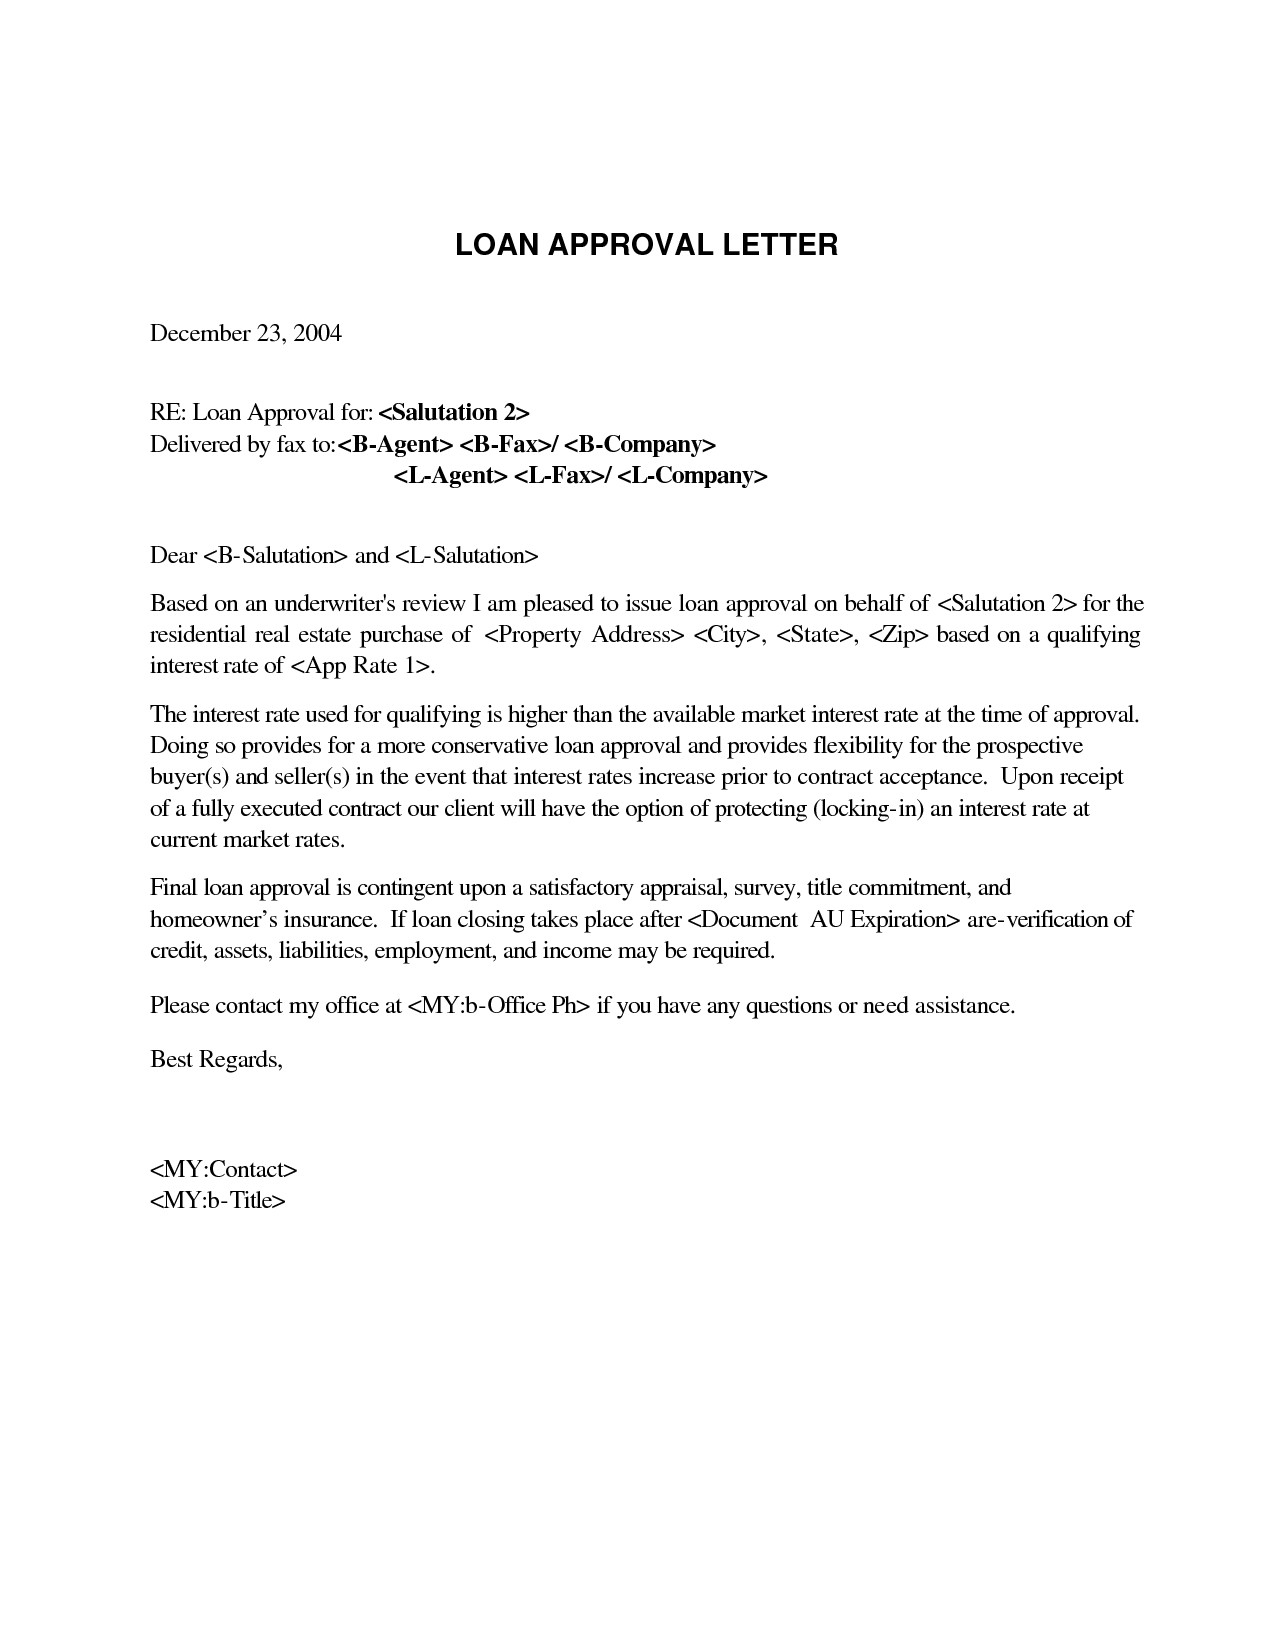 Commercial Real Estate Prospecting Letter Template - Letter format for Loan Request From Employer New Real Estate